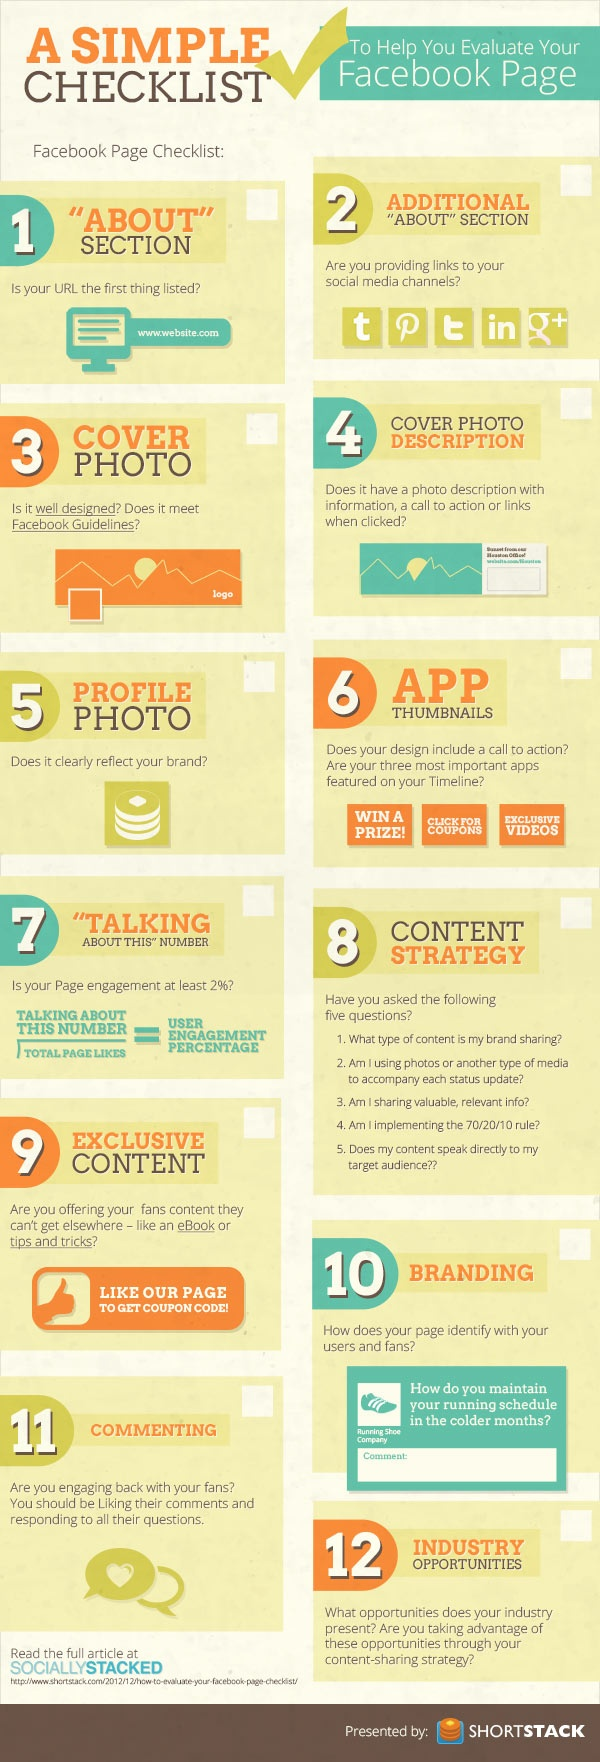 checklist to evaluate your facebook page #infografia